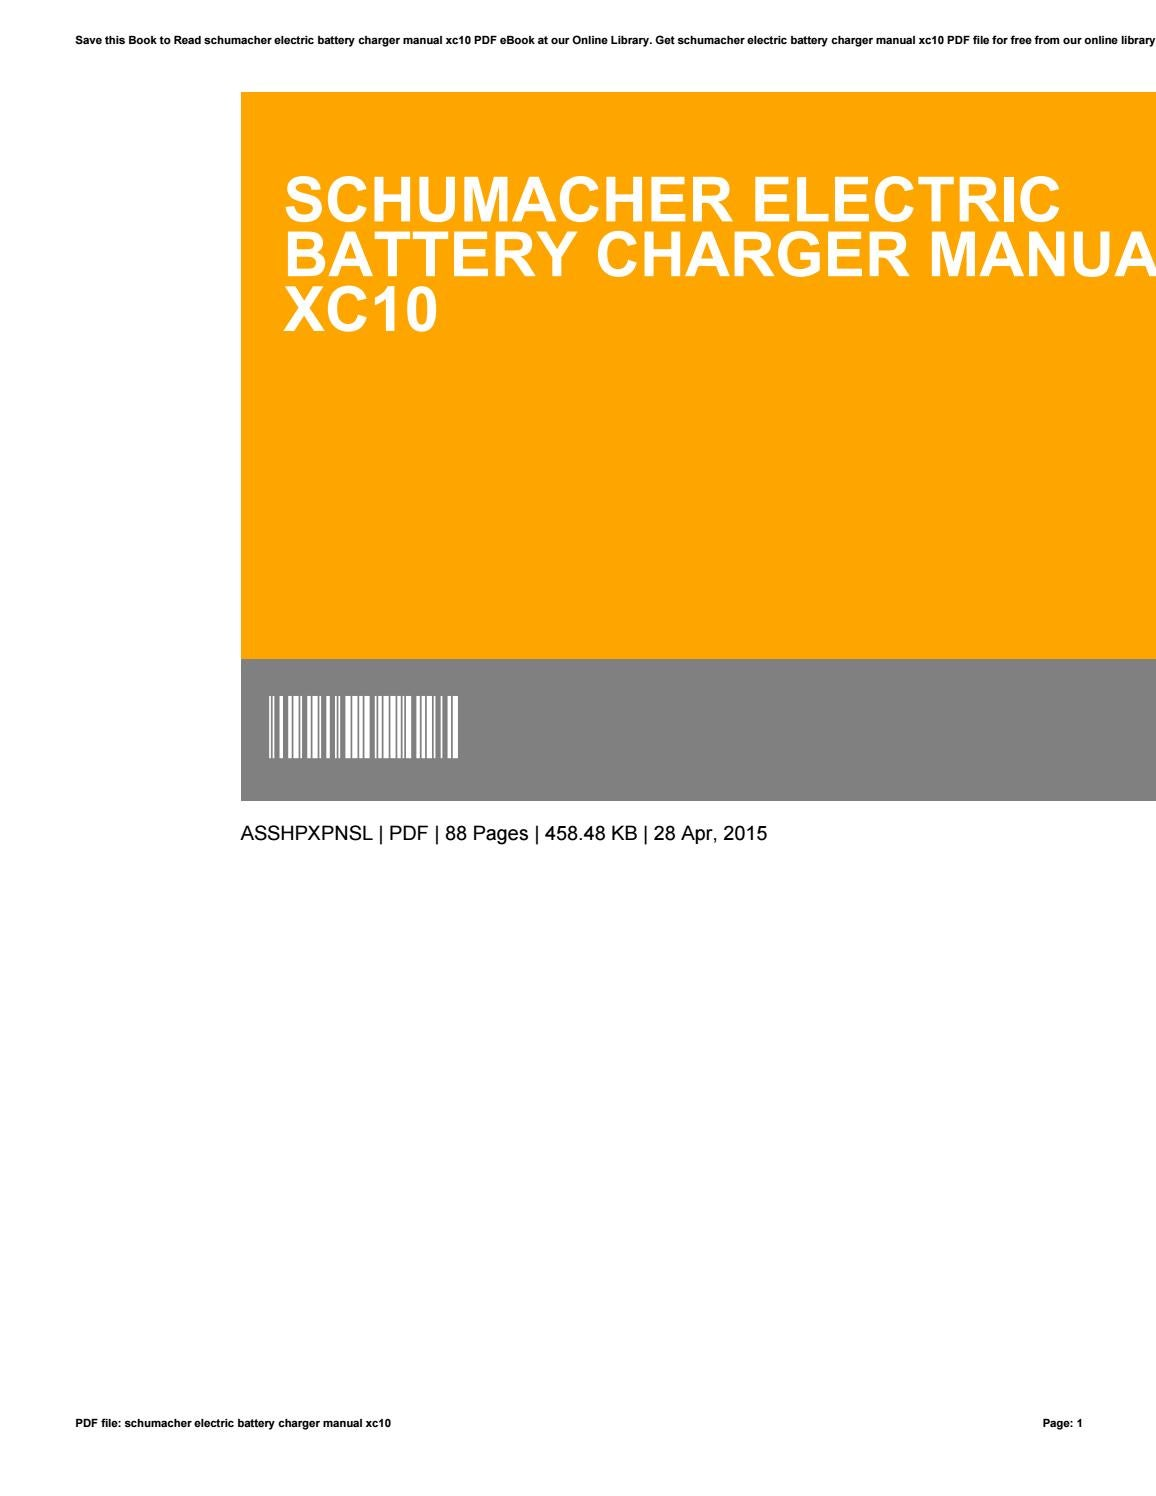 Schumacher xc10 speedcharge 10 amp battery charger manual.